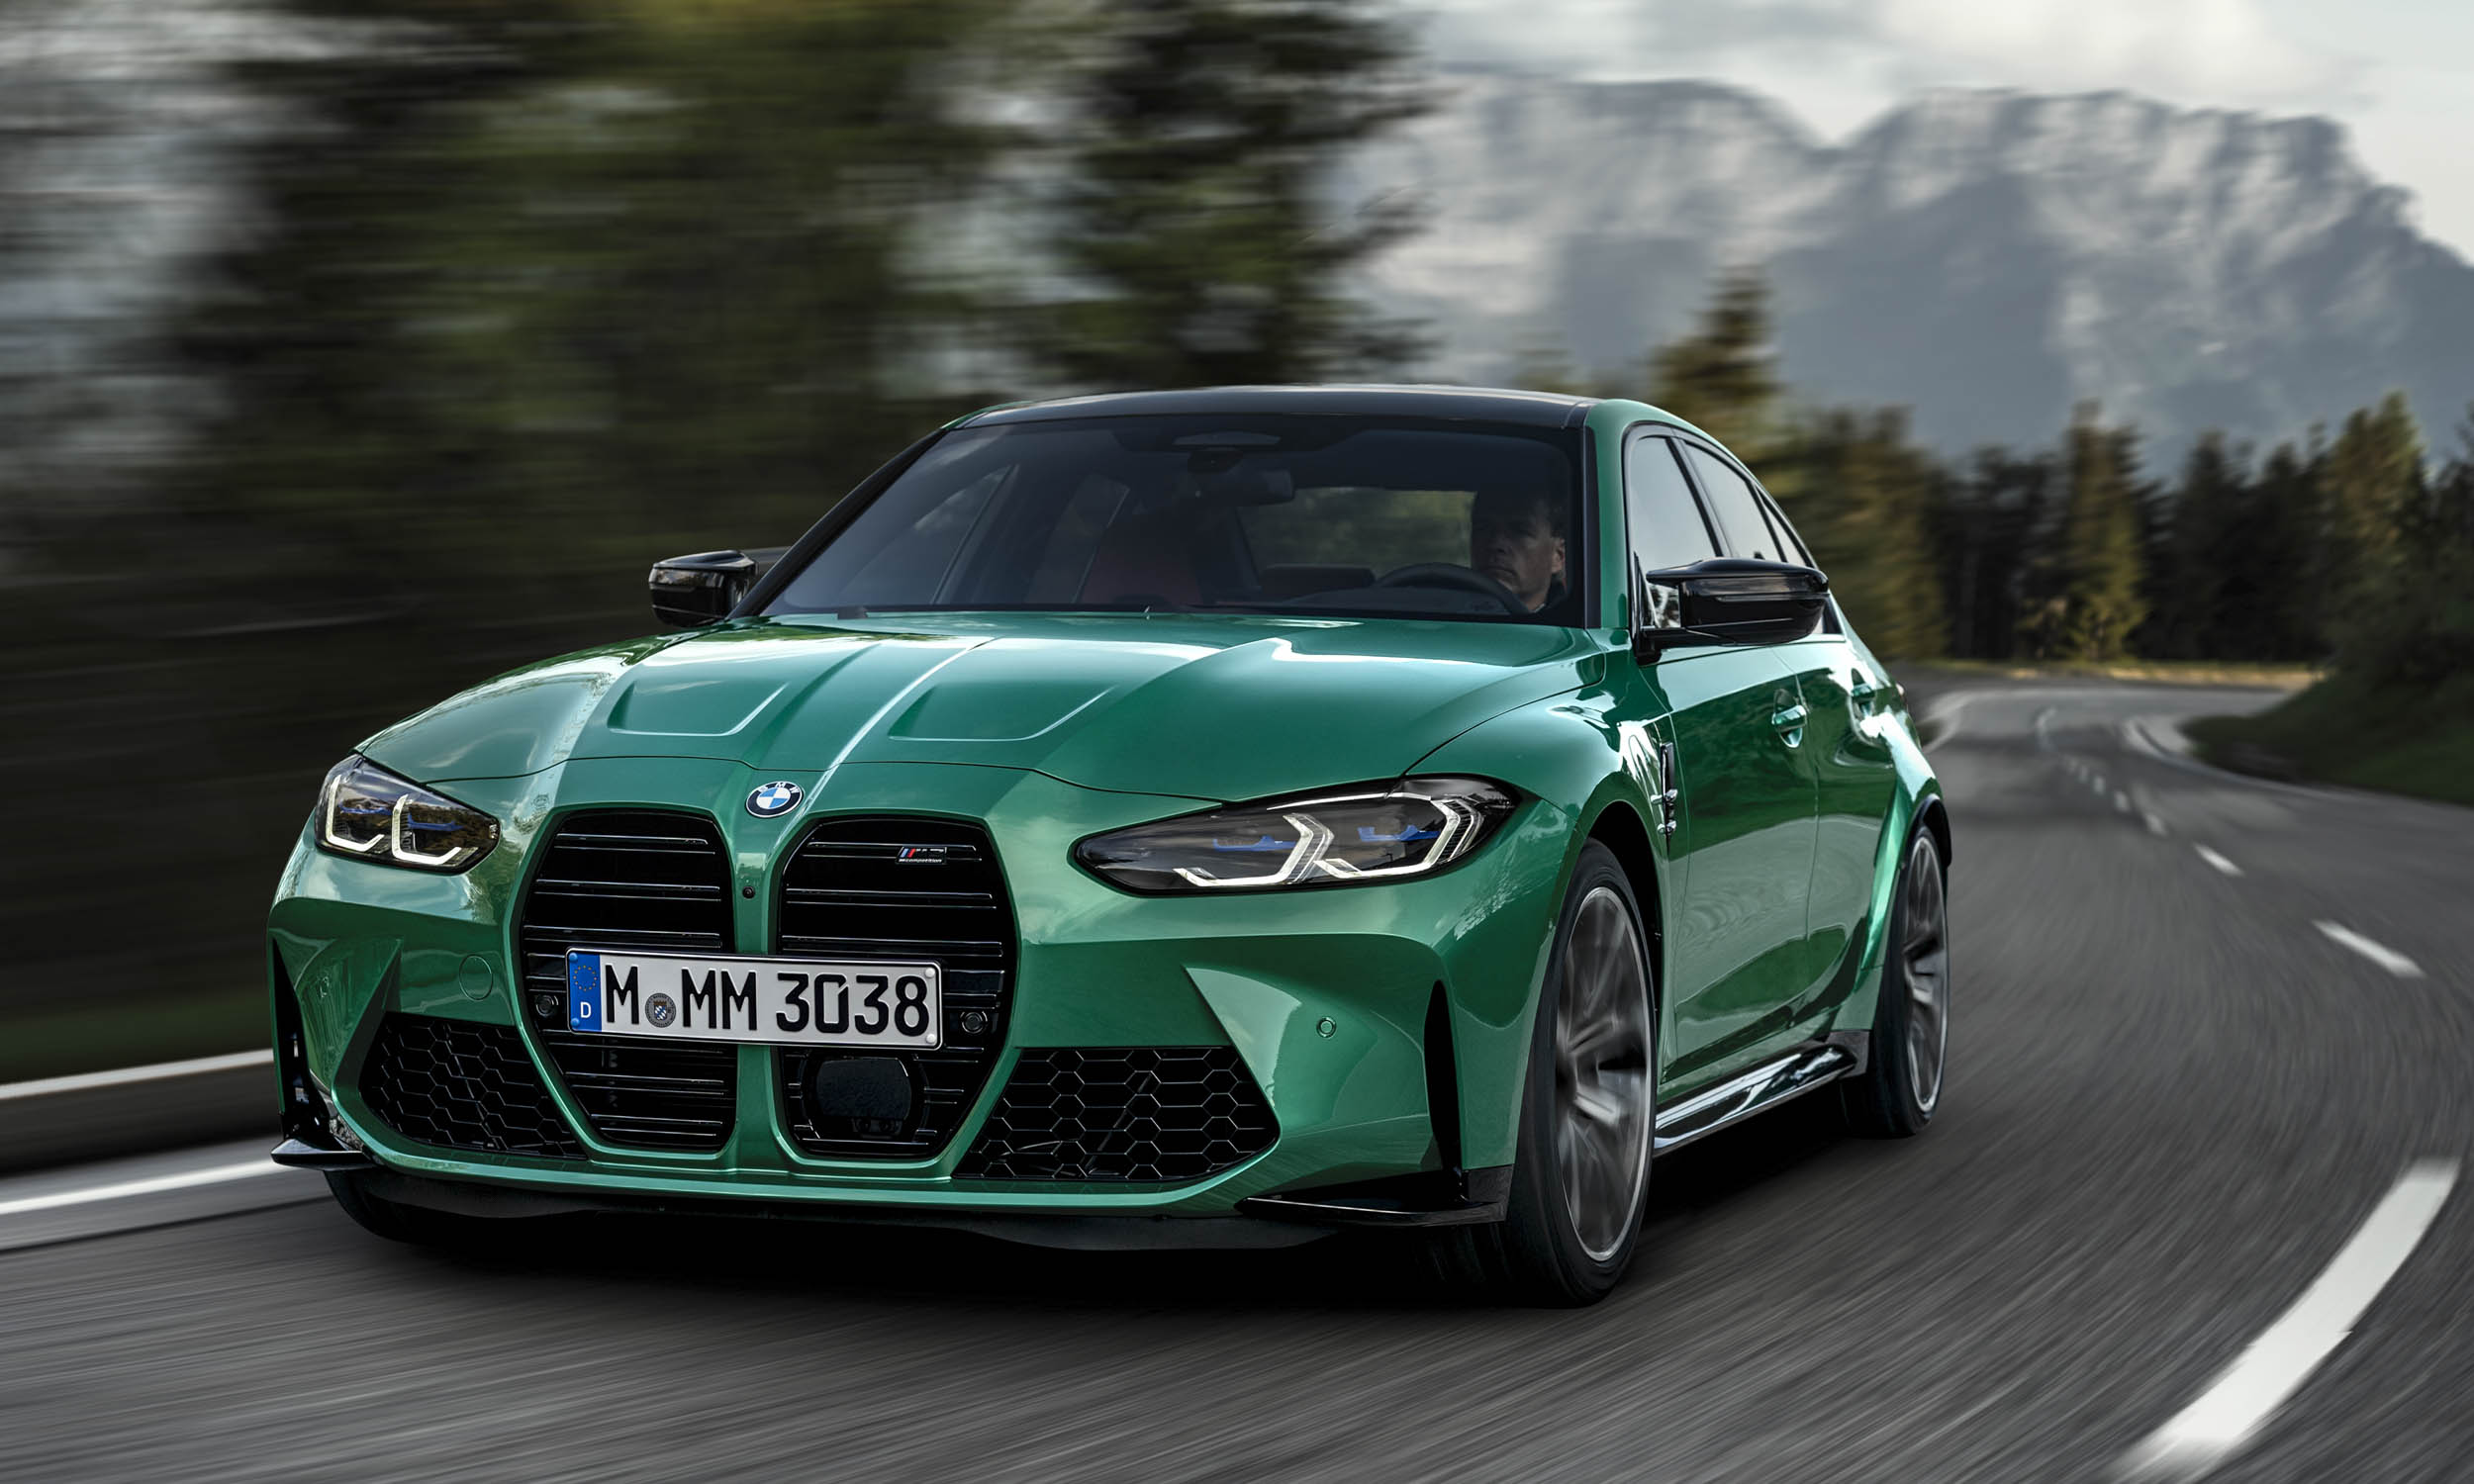 photos: all-new 2021 bmw m3 and m4 - » autonxt